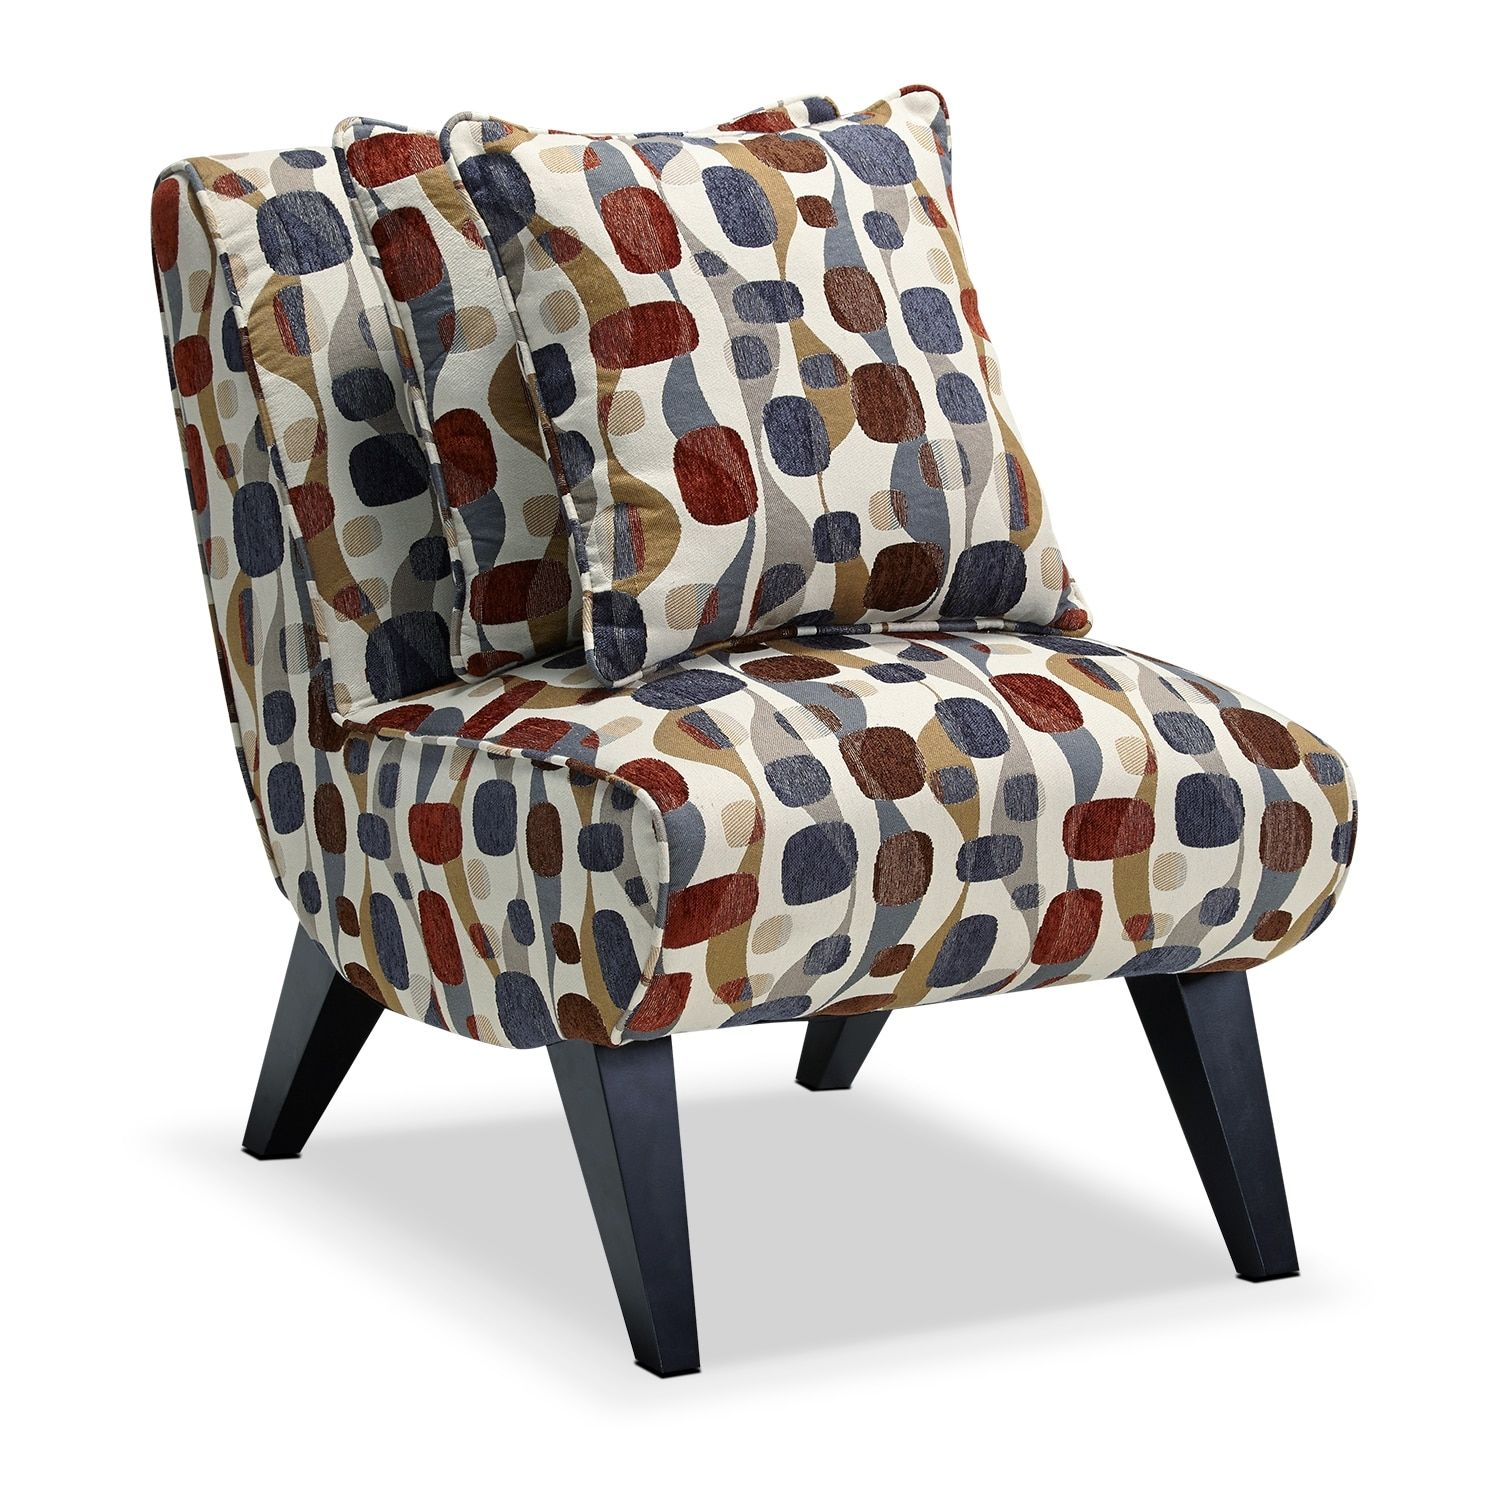 765117 1604273 En Us Products Accent Chairs For Sale